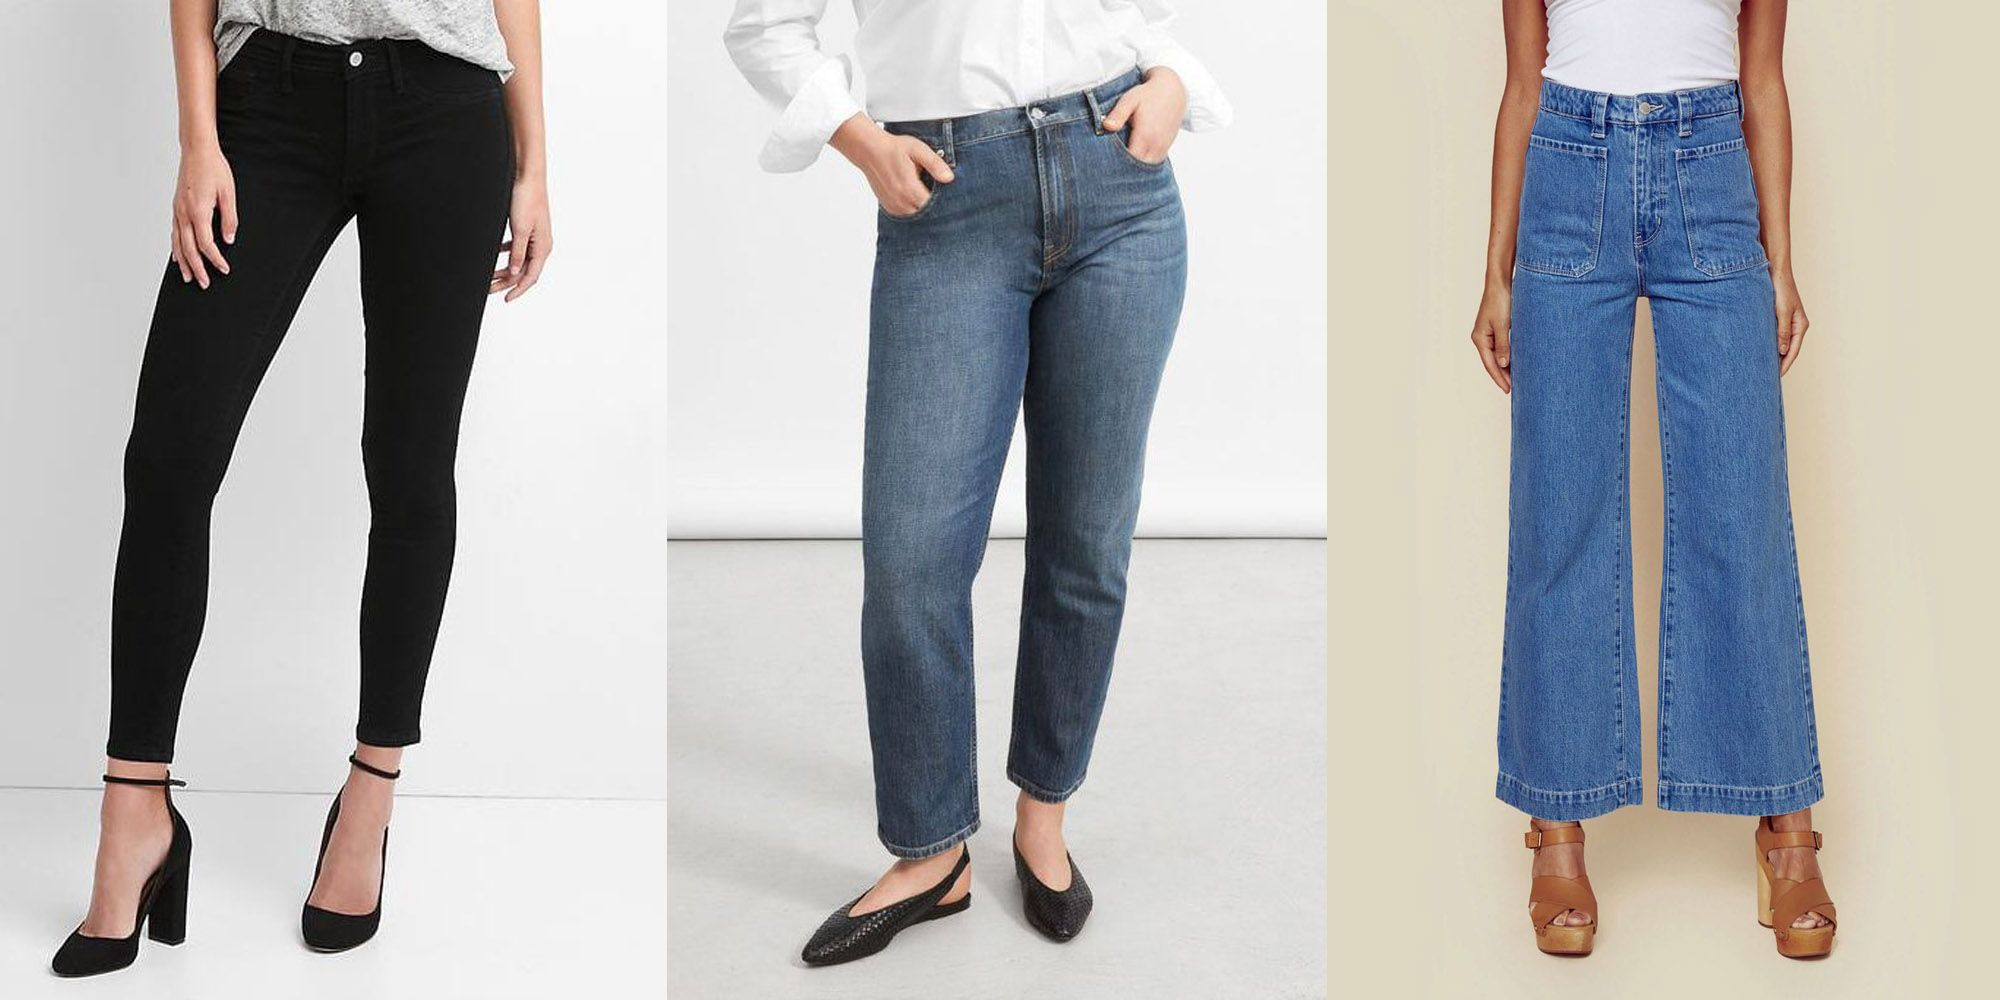 d41ad97bad7 20 of the Best Women s Jeans in Every Style — Best Denim Jeans for Women